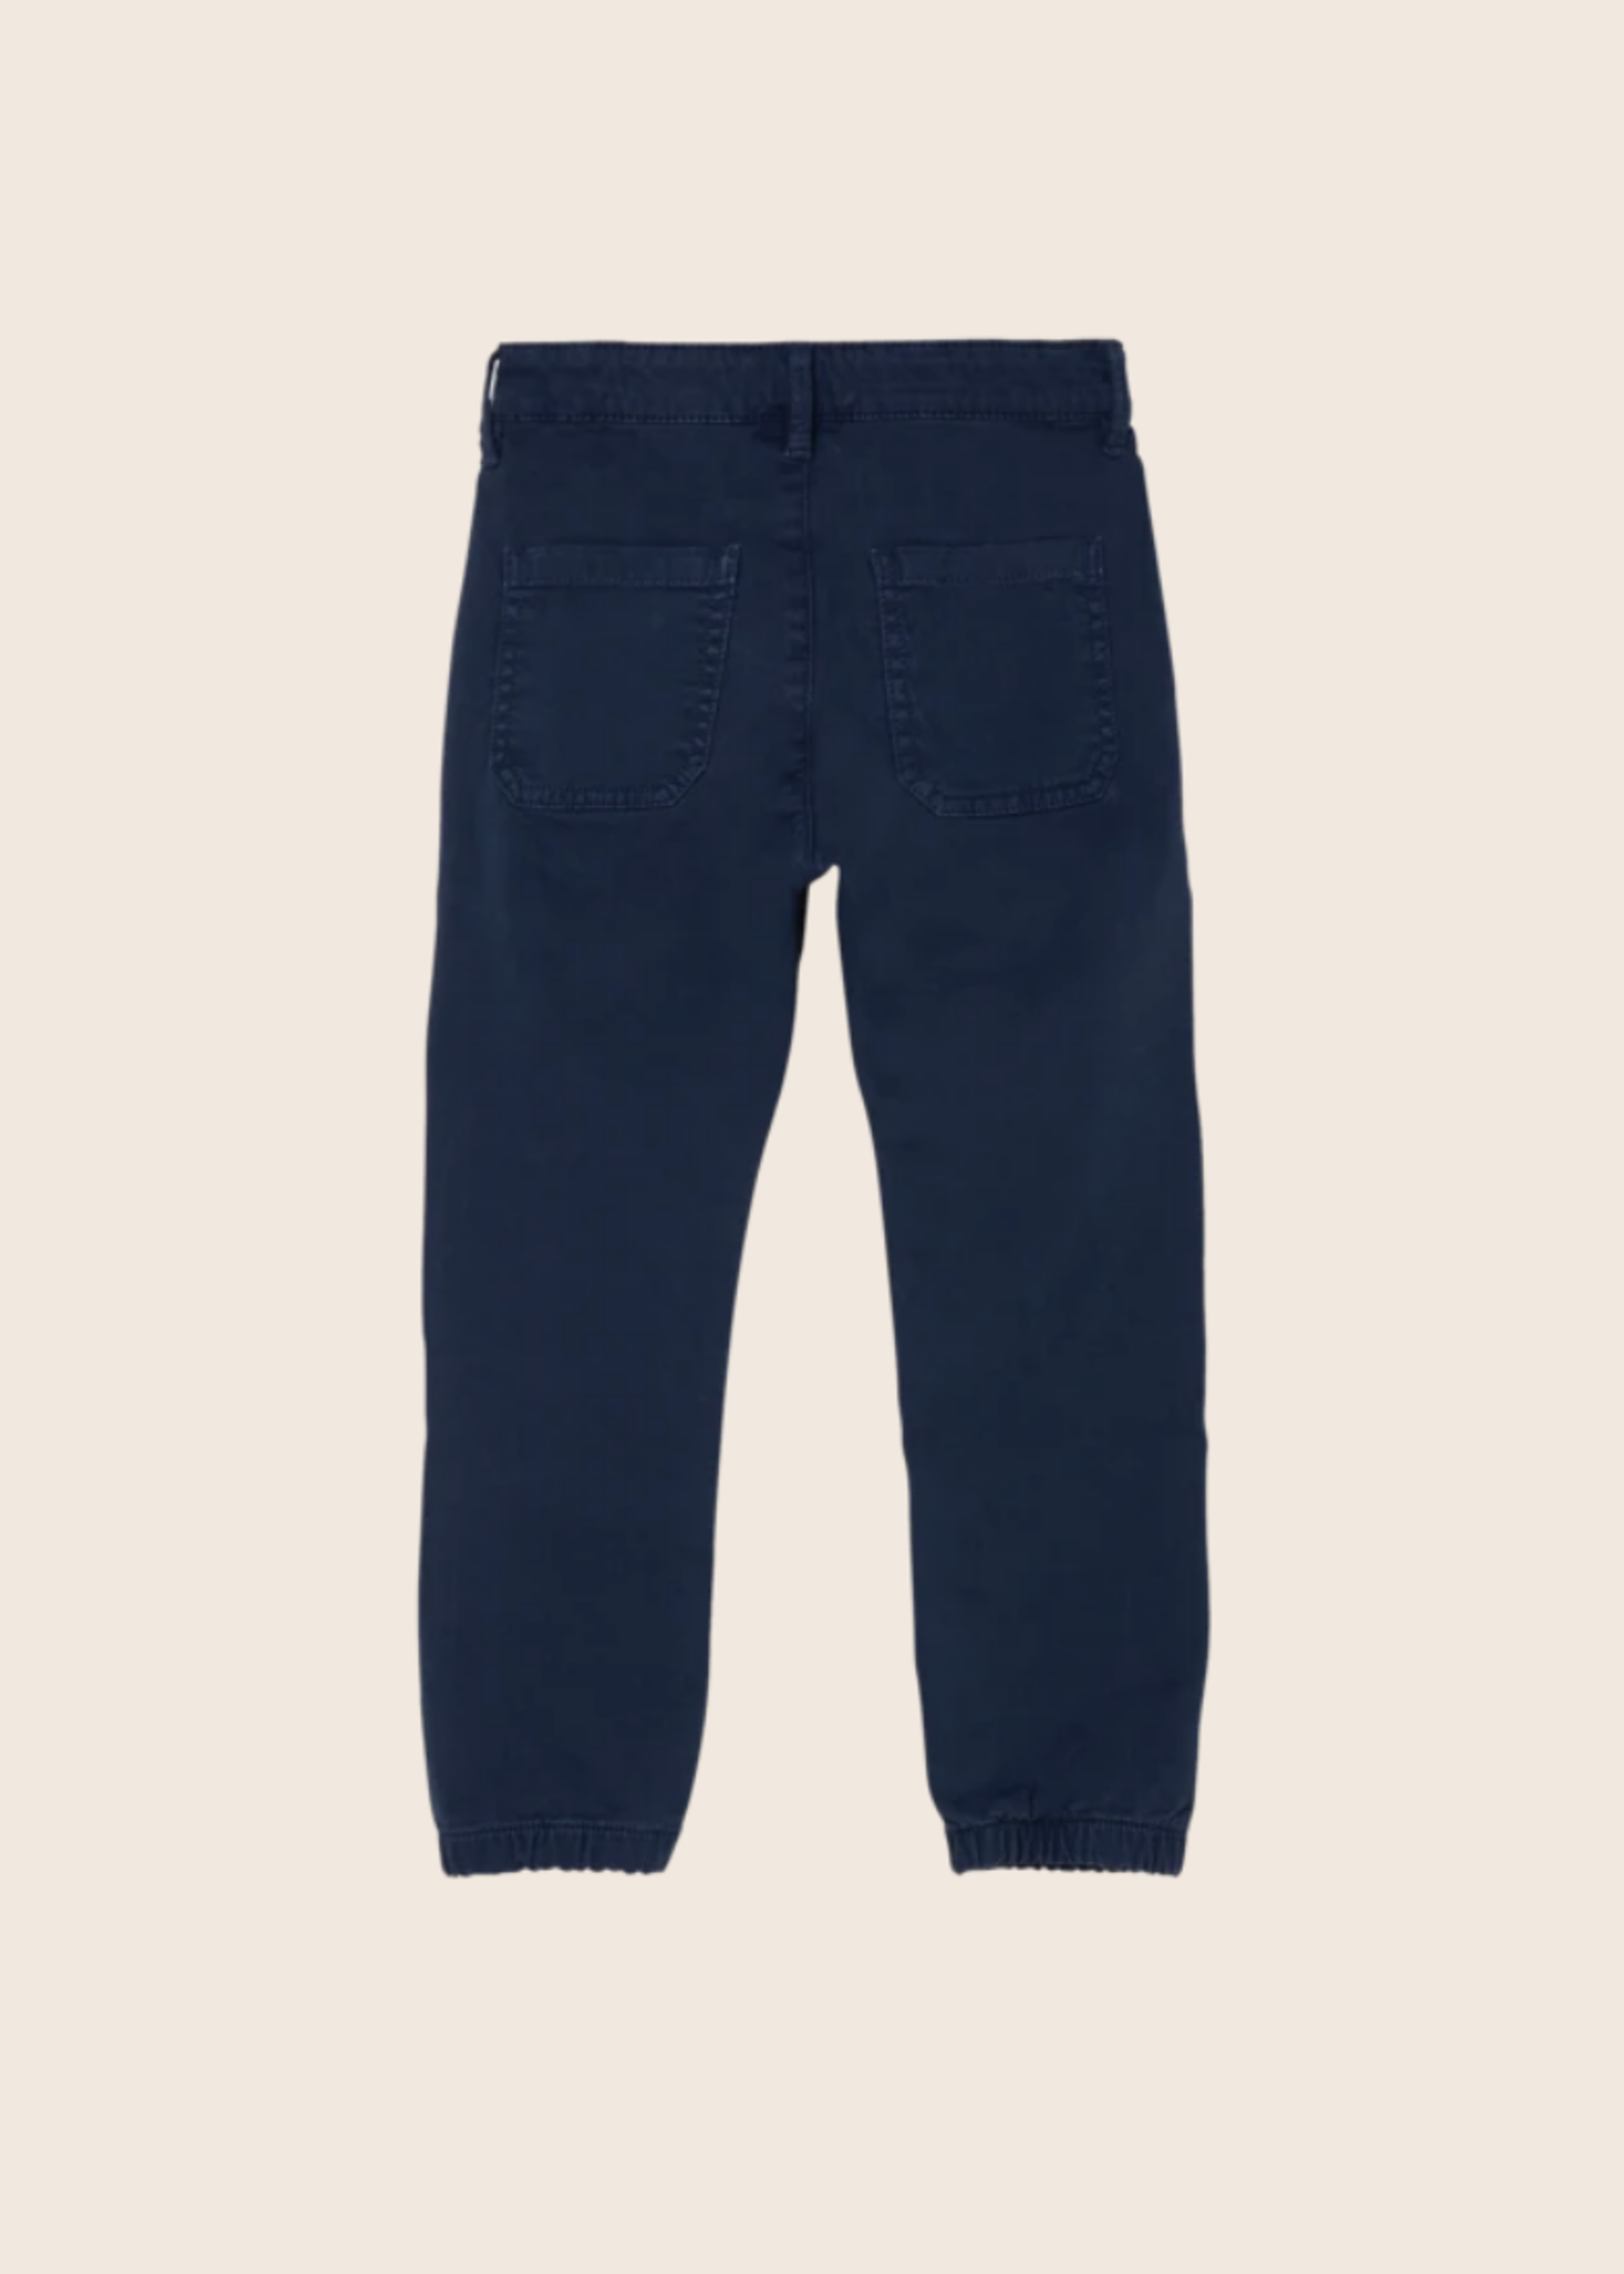 FINGER IN THE NOSE SKATER Navy - Elasticed Bottom Chino Fit Pants